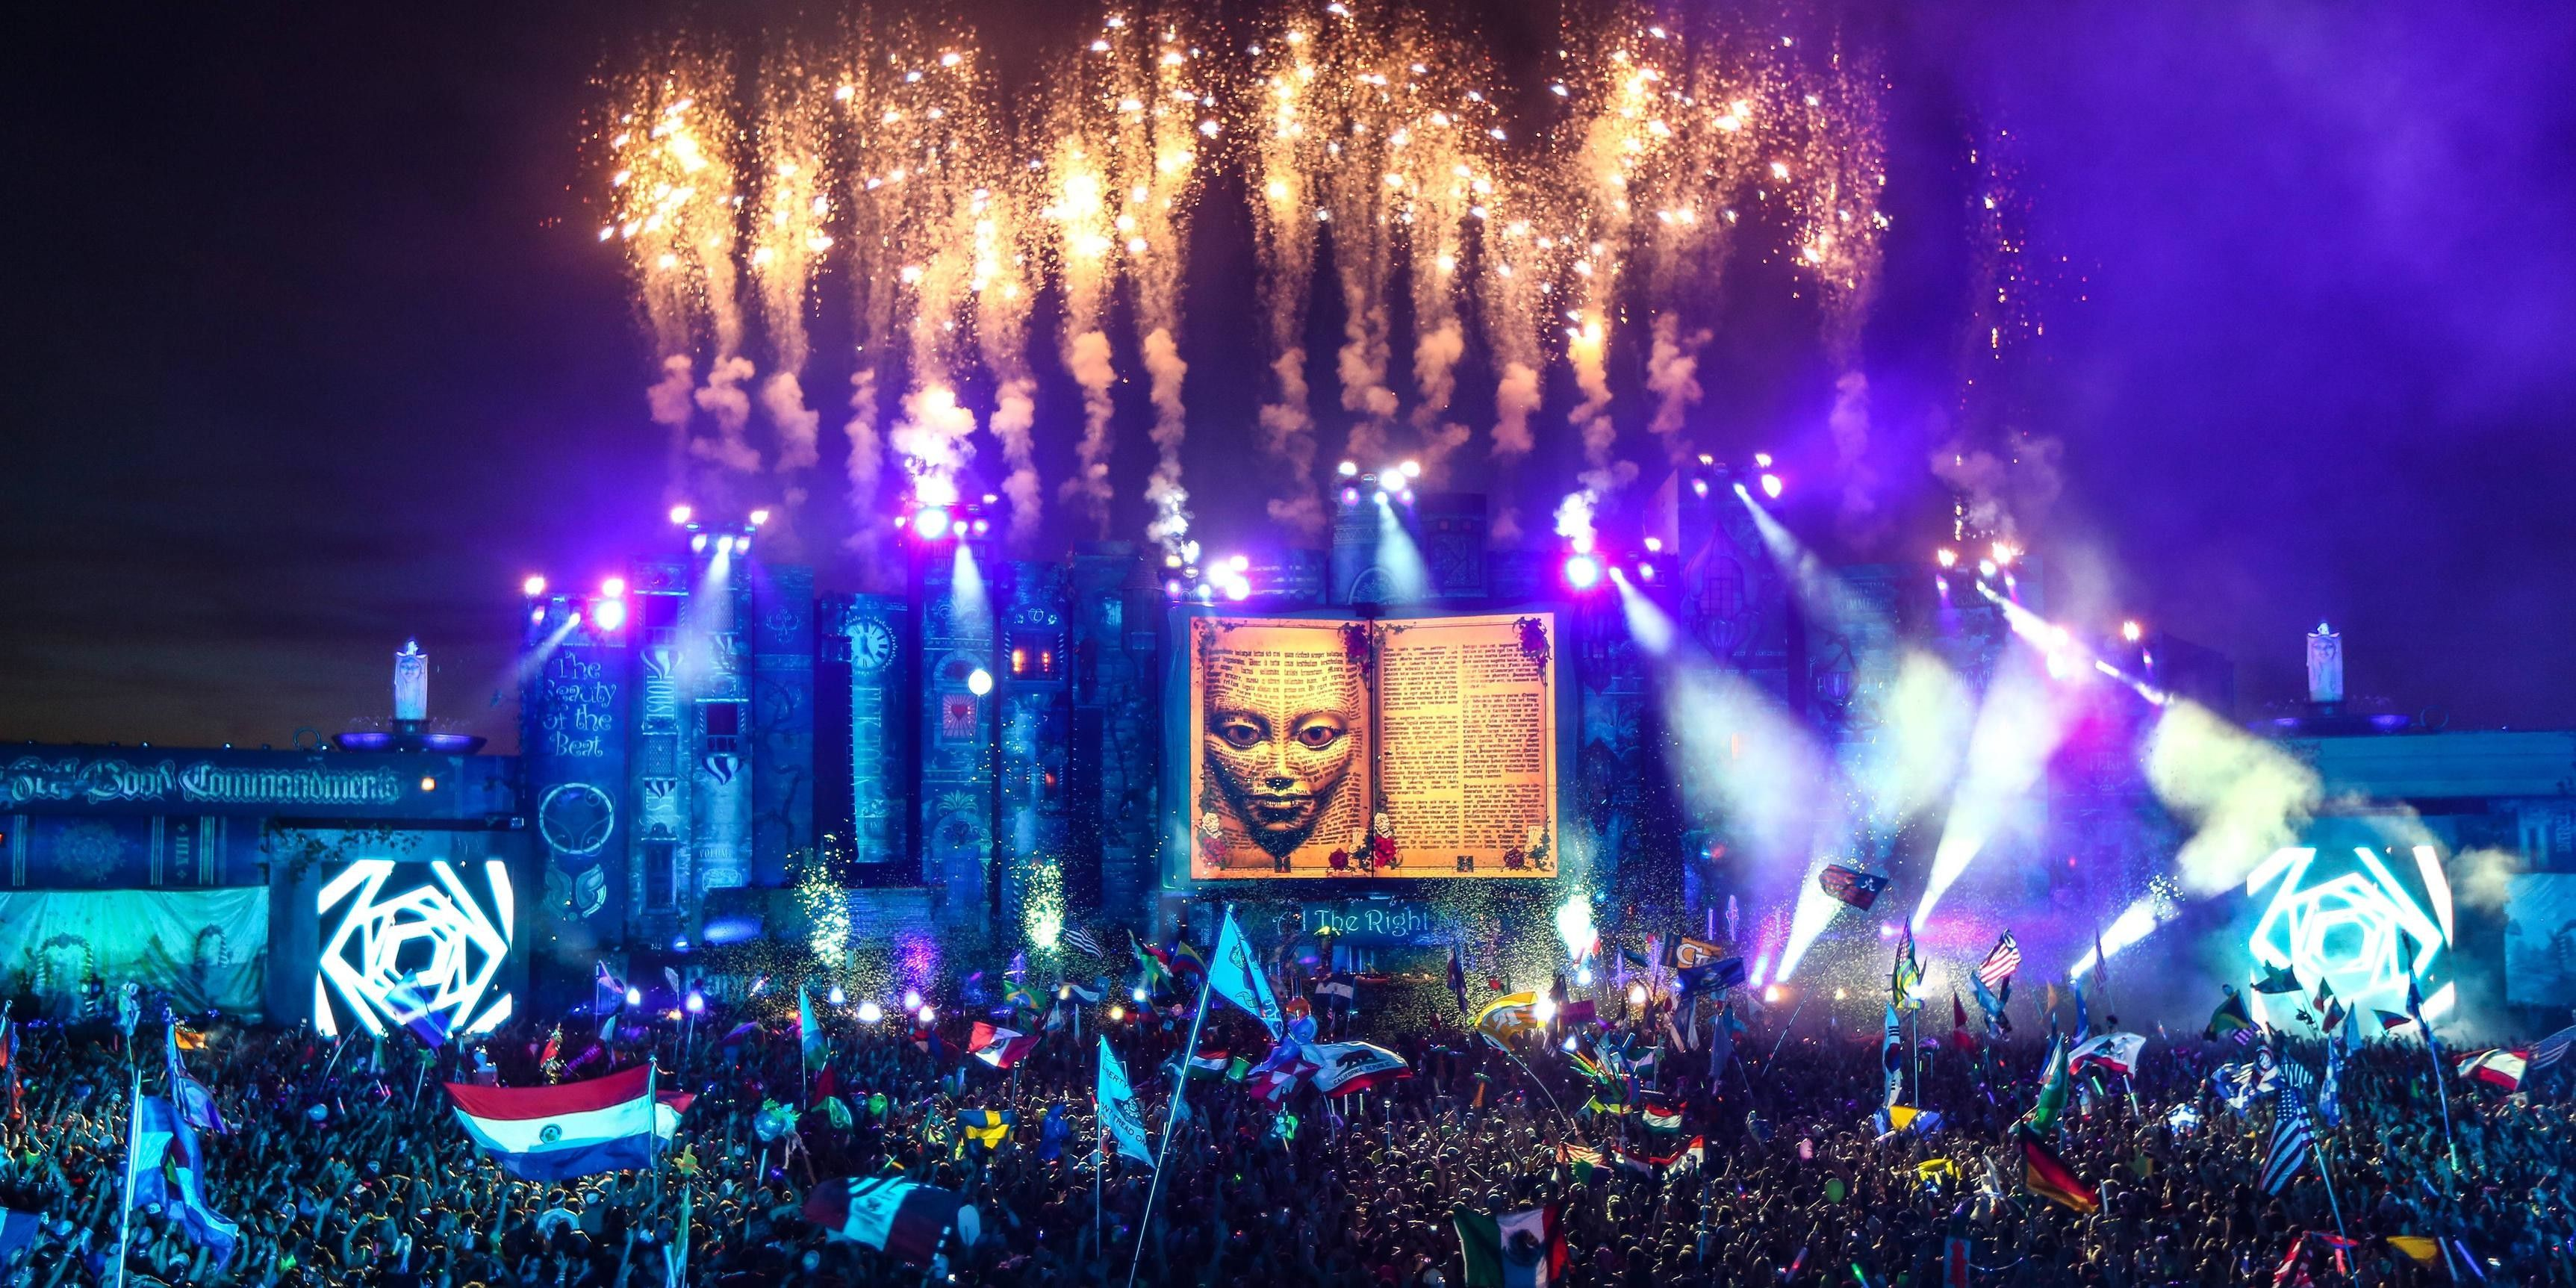 Tomorrowland 2018 Wallpapers Top Free Tomorrowland 2018